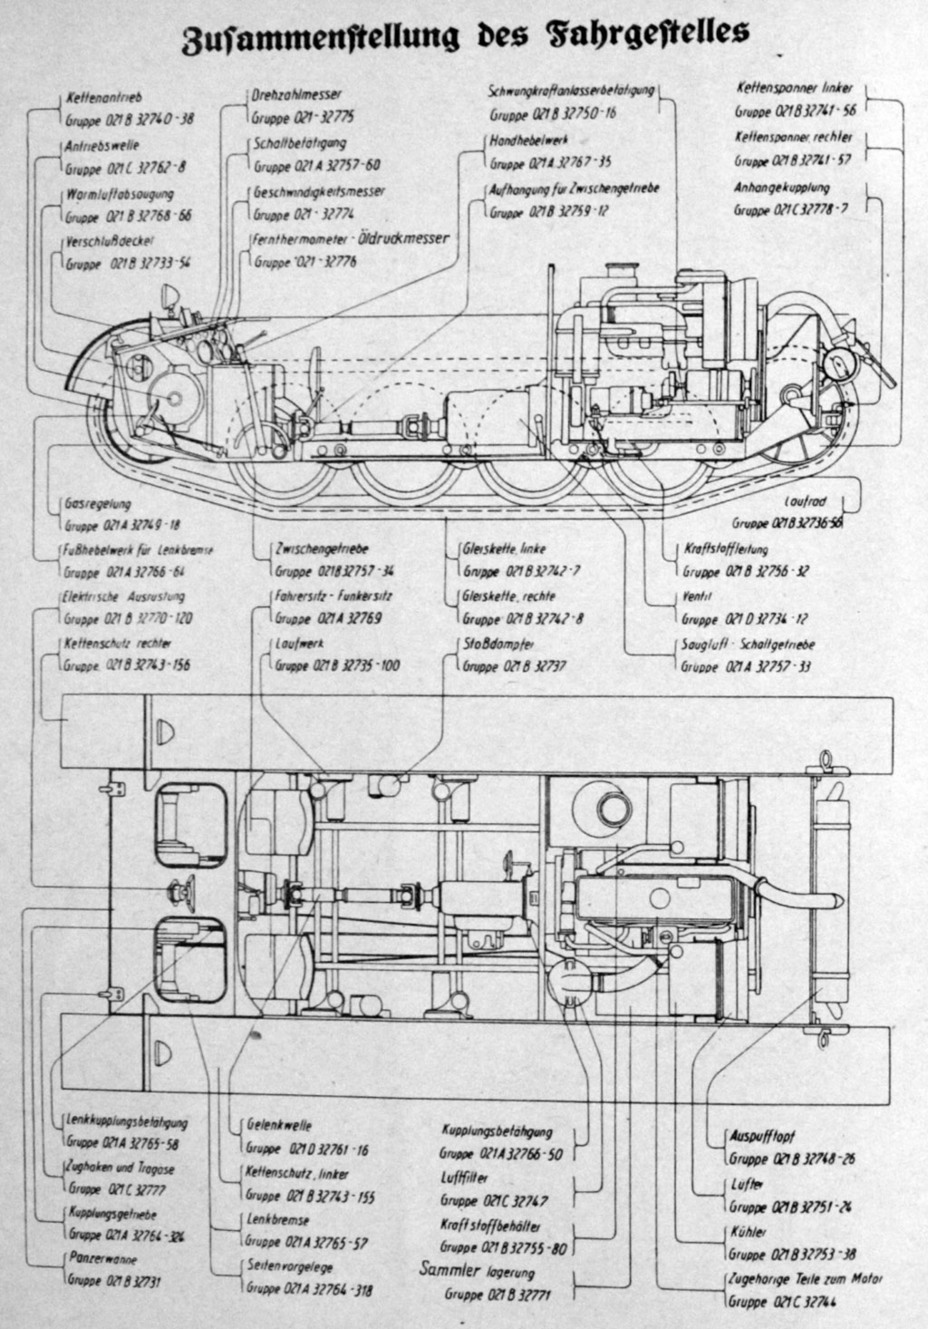 hight resolution of instead of a v shaped engine the vehicle indexed la s 138 used the 140 hp linear maybach hl 62 tr engine the same as on the pzii ausf c